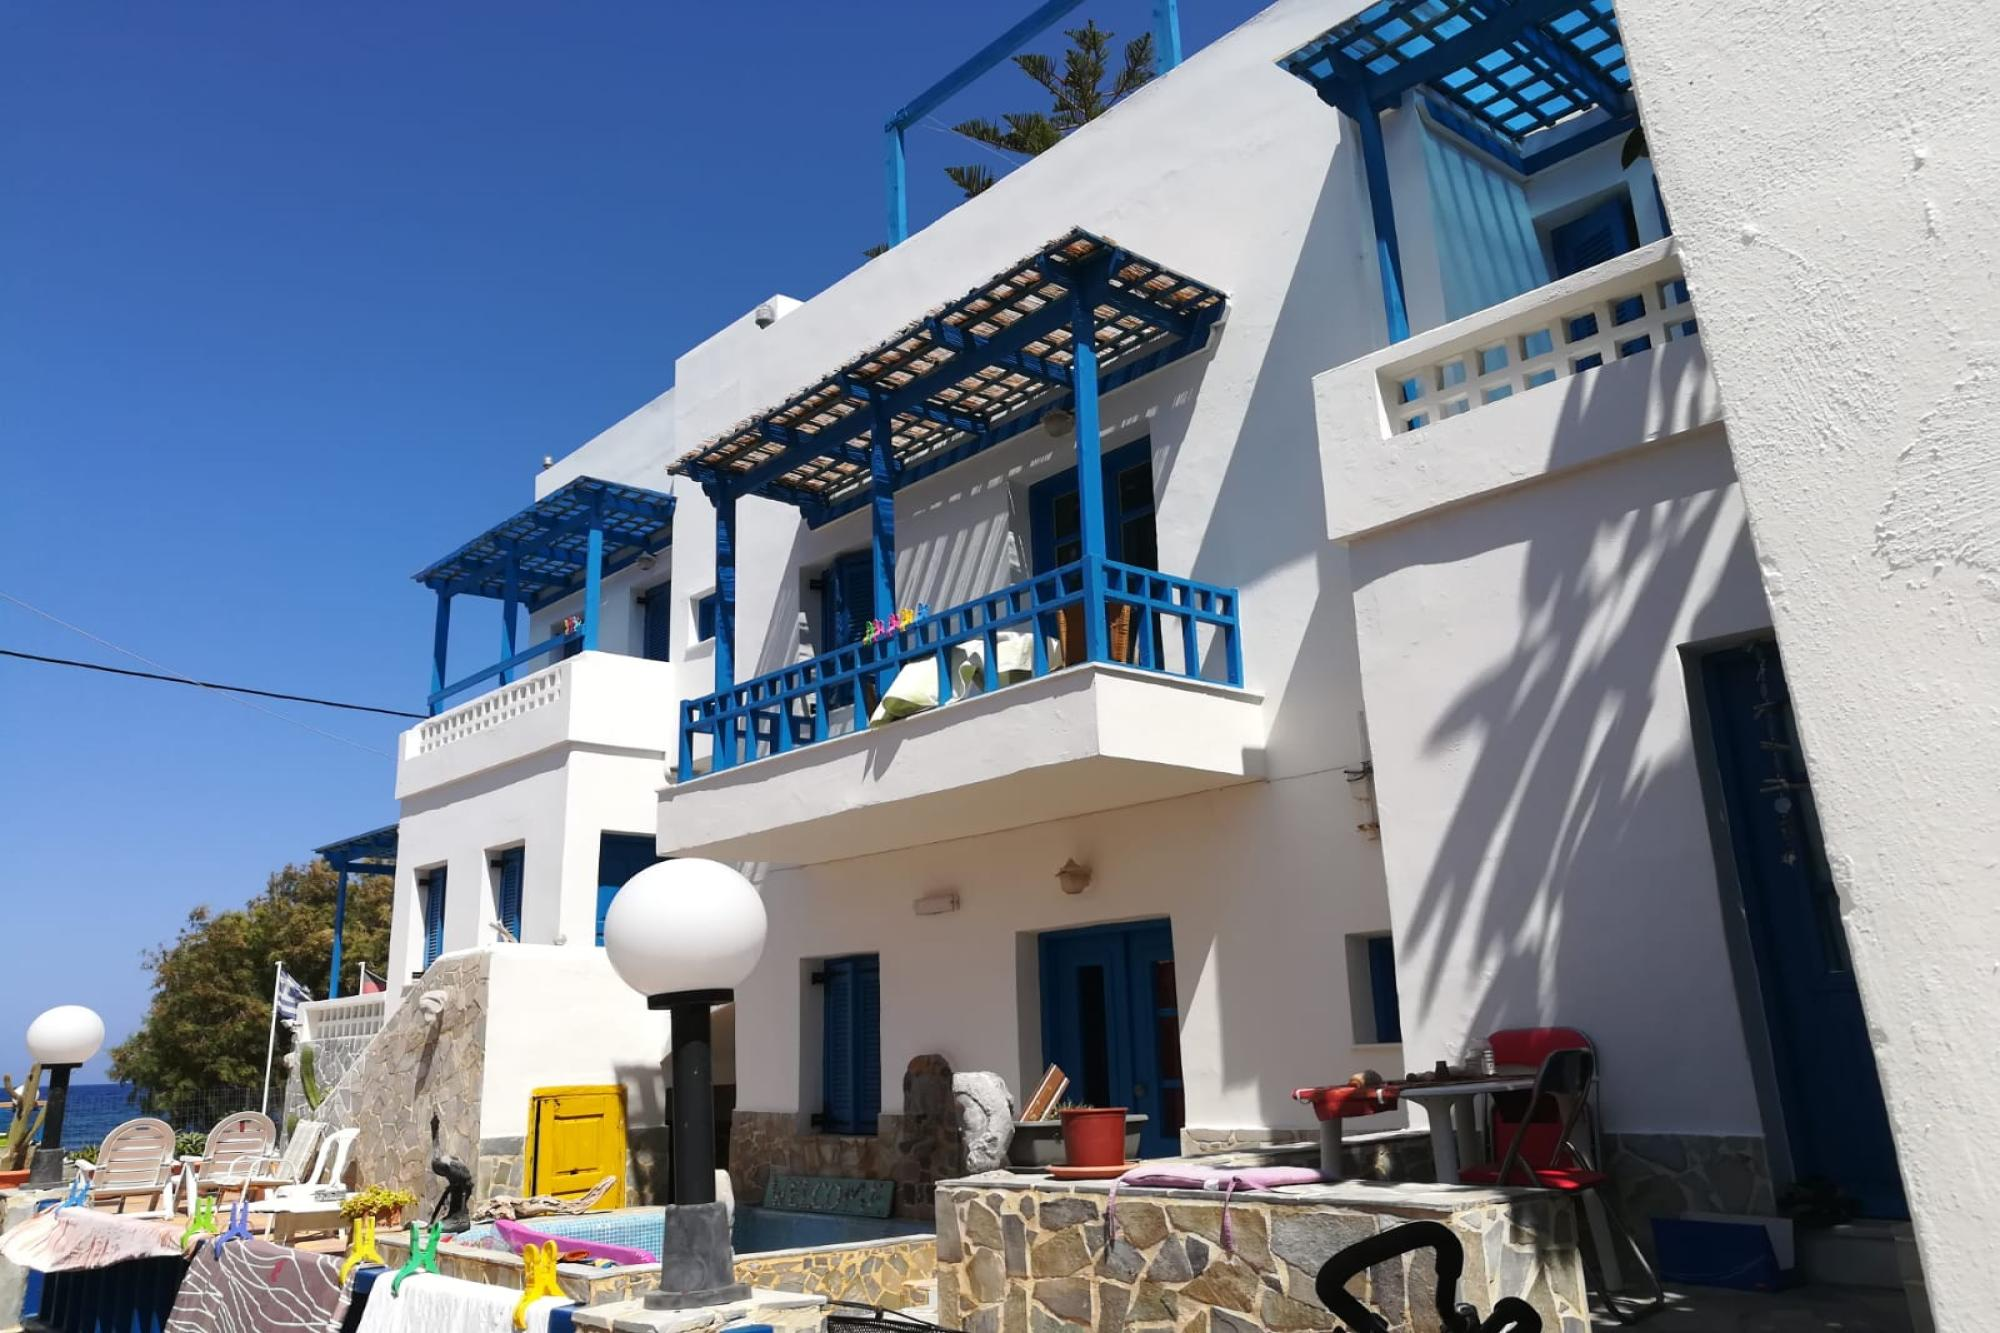 Complex/Hotel of 8 apartments on the seashore, next to beach.